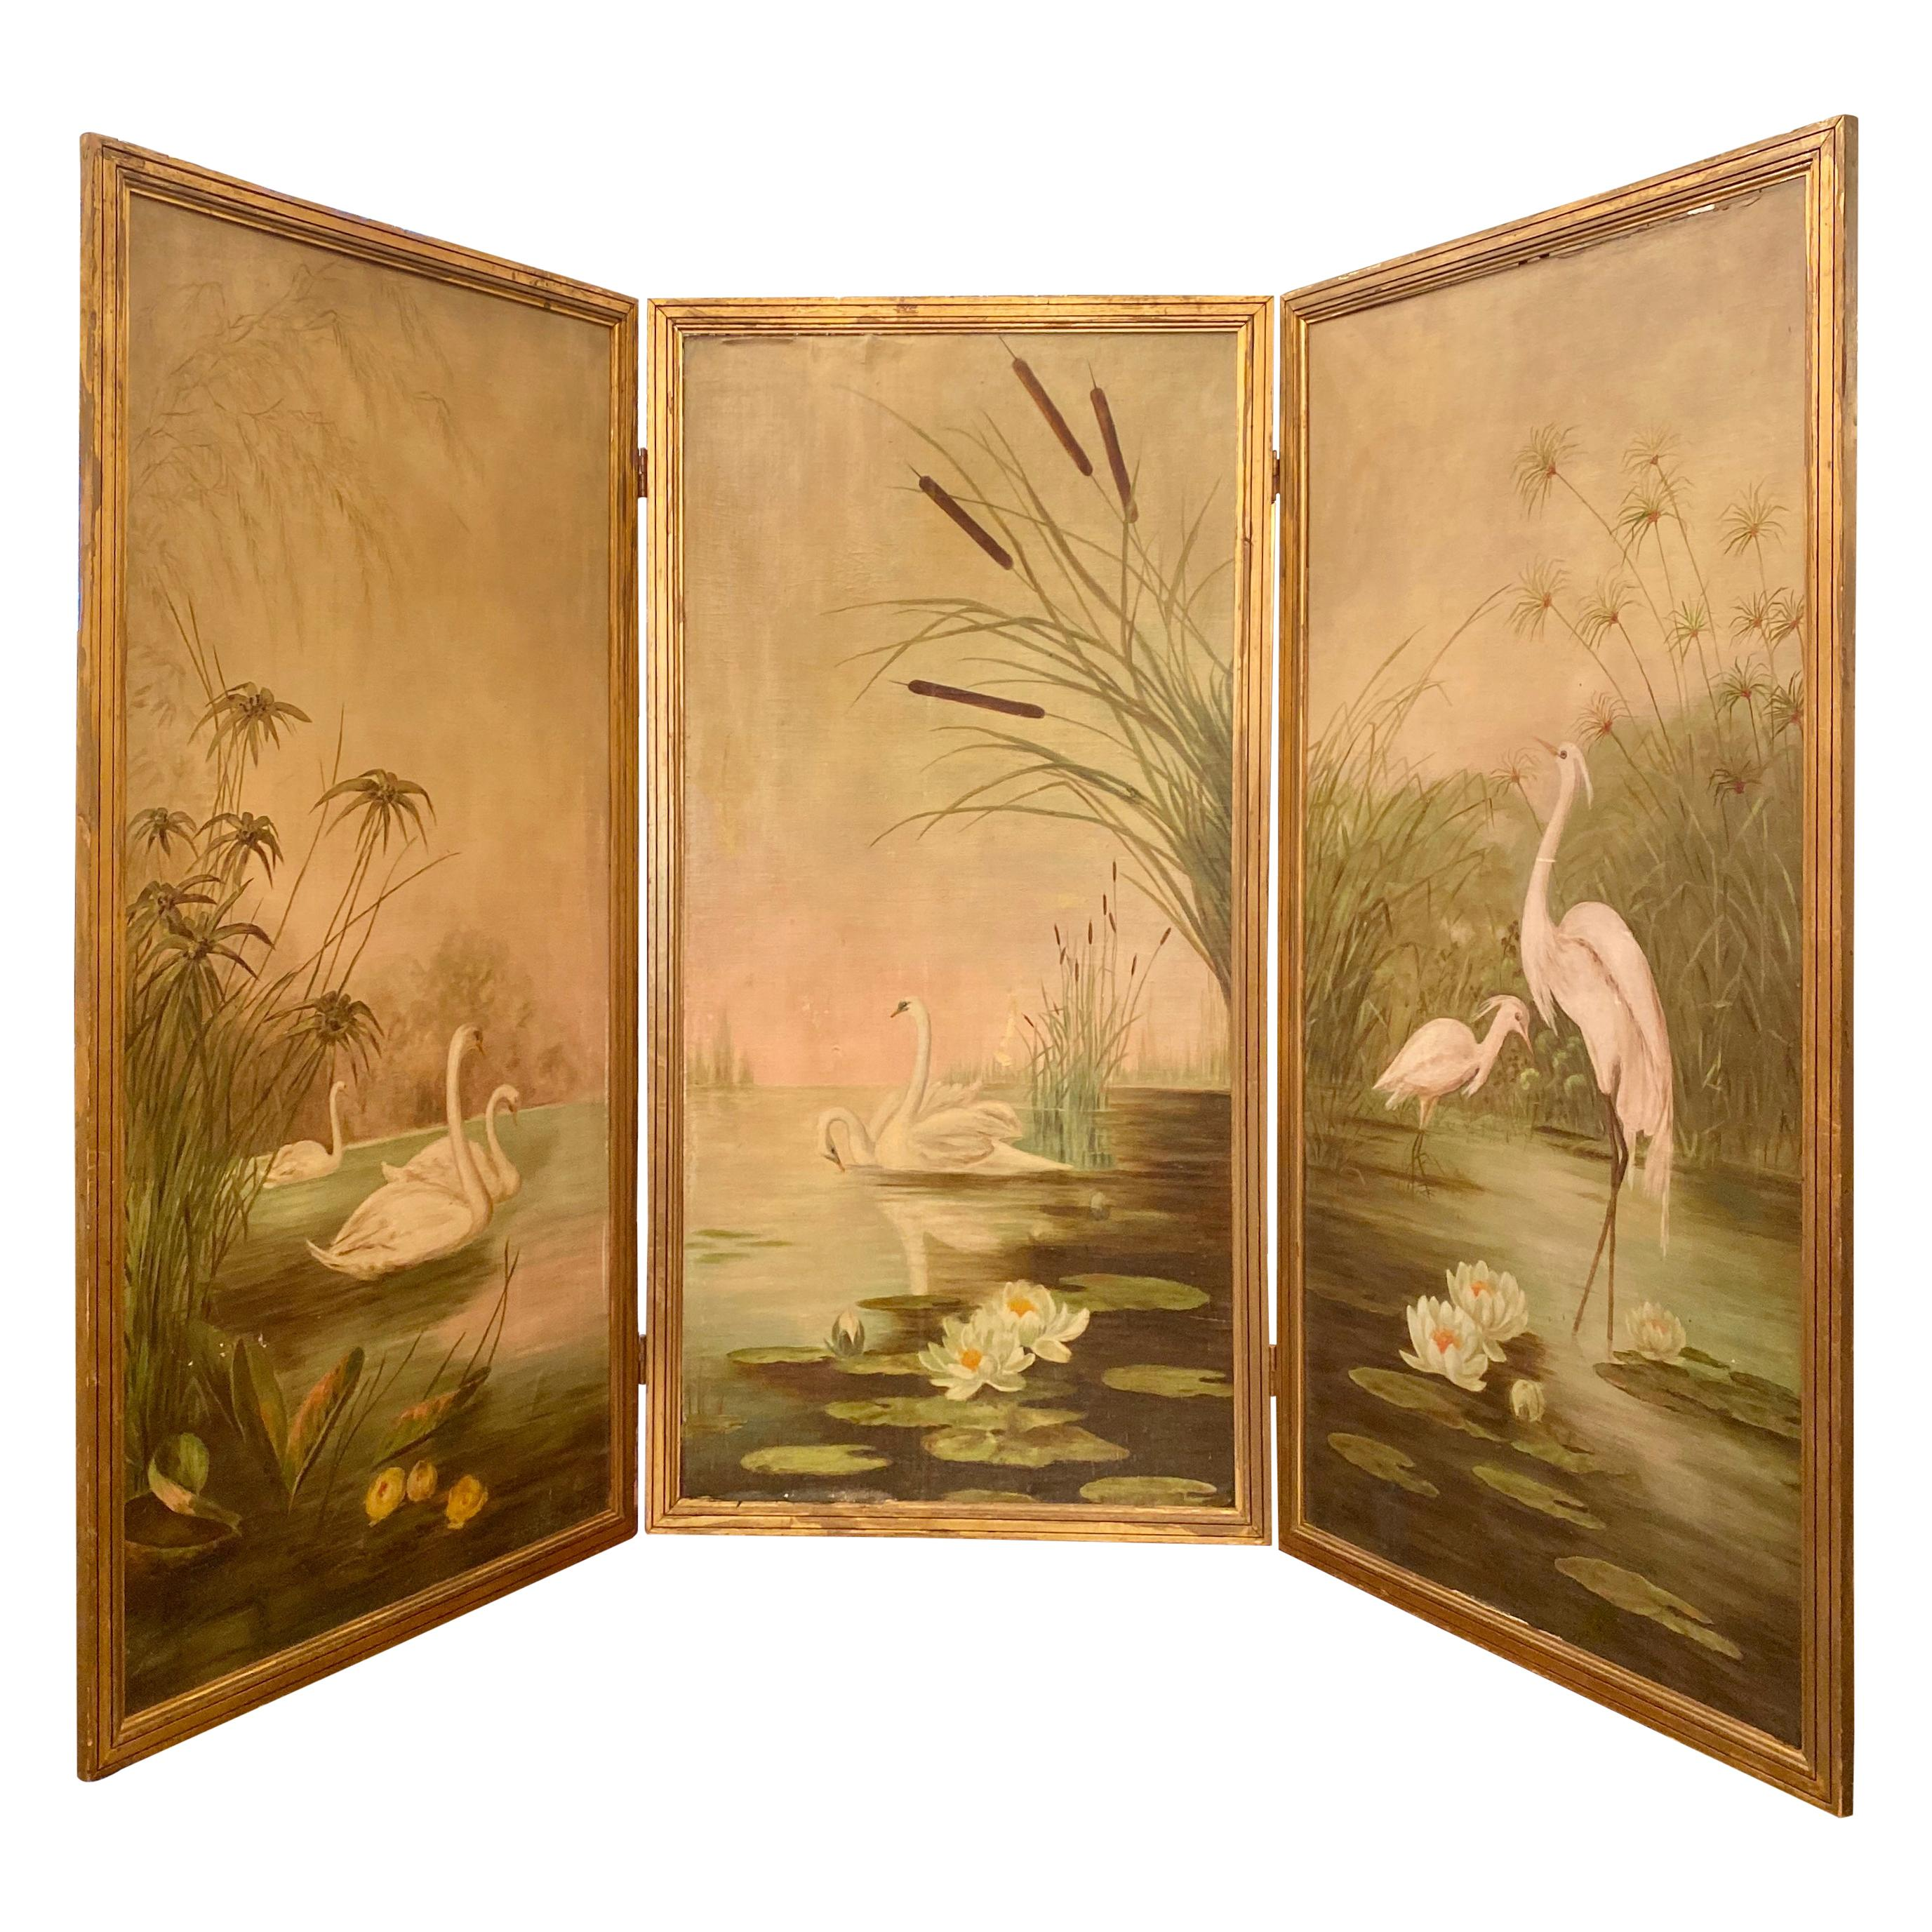 Estate Three Paneled Art Nouveau Painted Oil on Canvas Landscape Screen